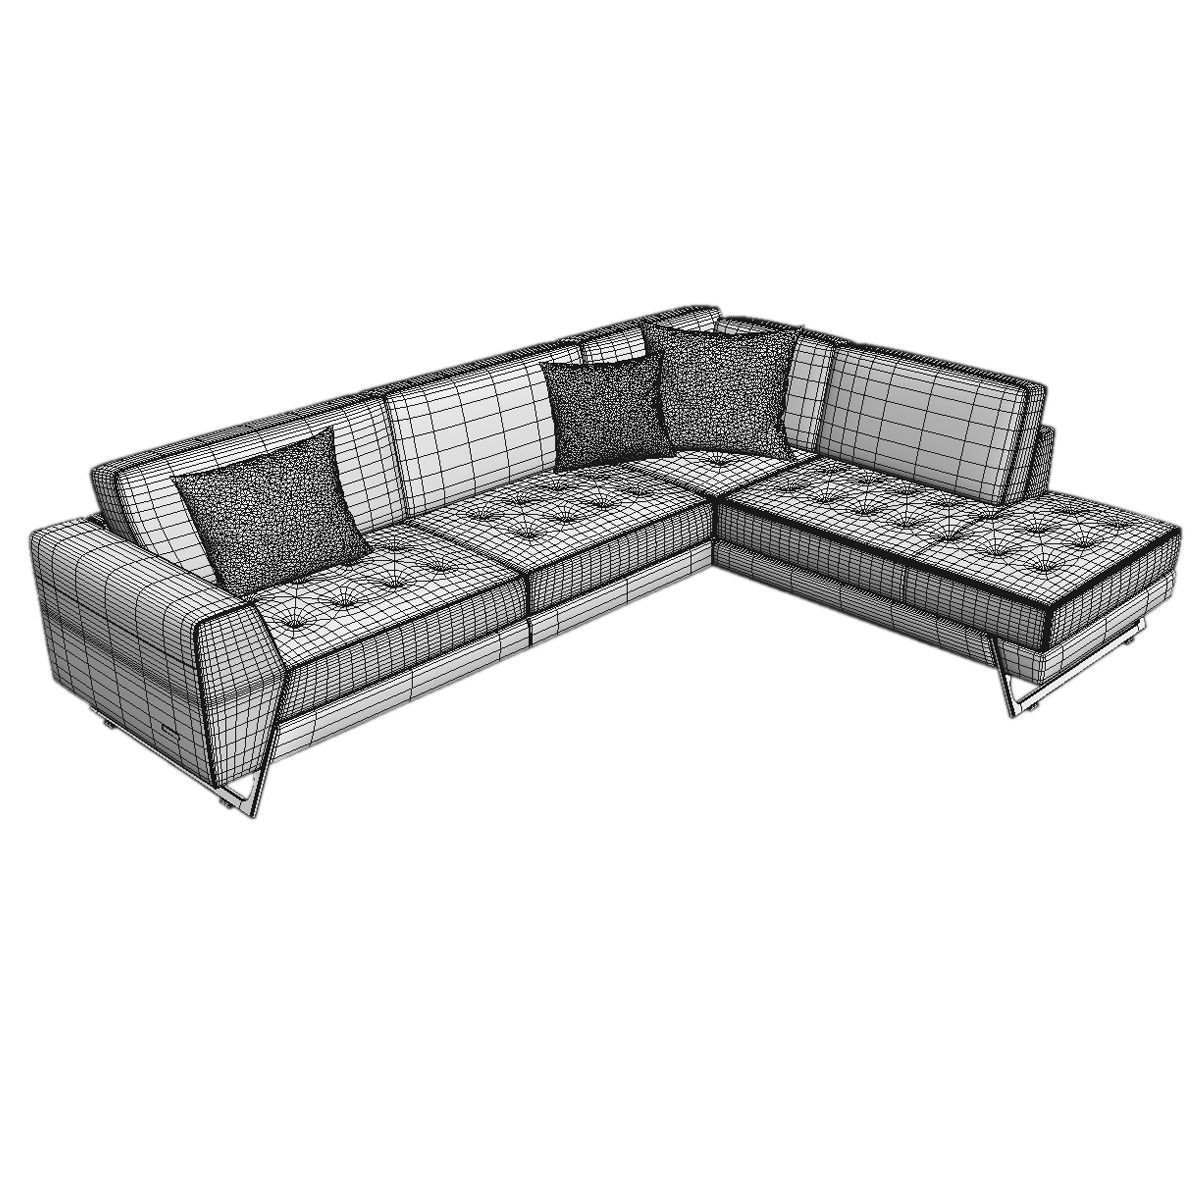 roche bobois satelis canape sofa and armchair free 3d model max. Black Bedroom Furniture Sets. Home Design Ideas